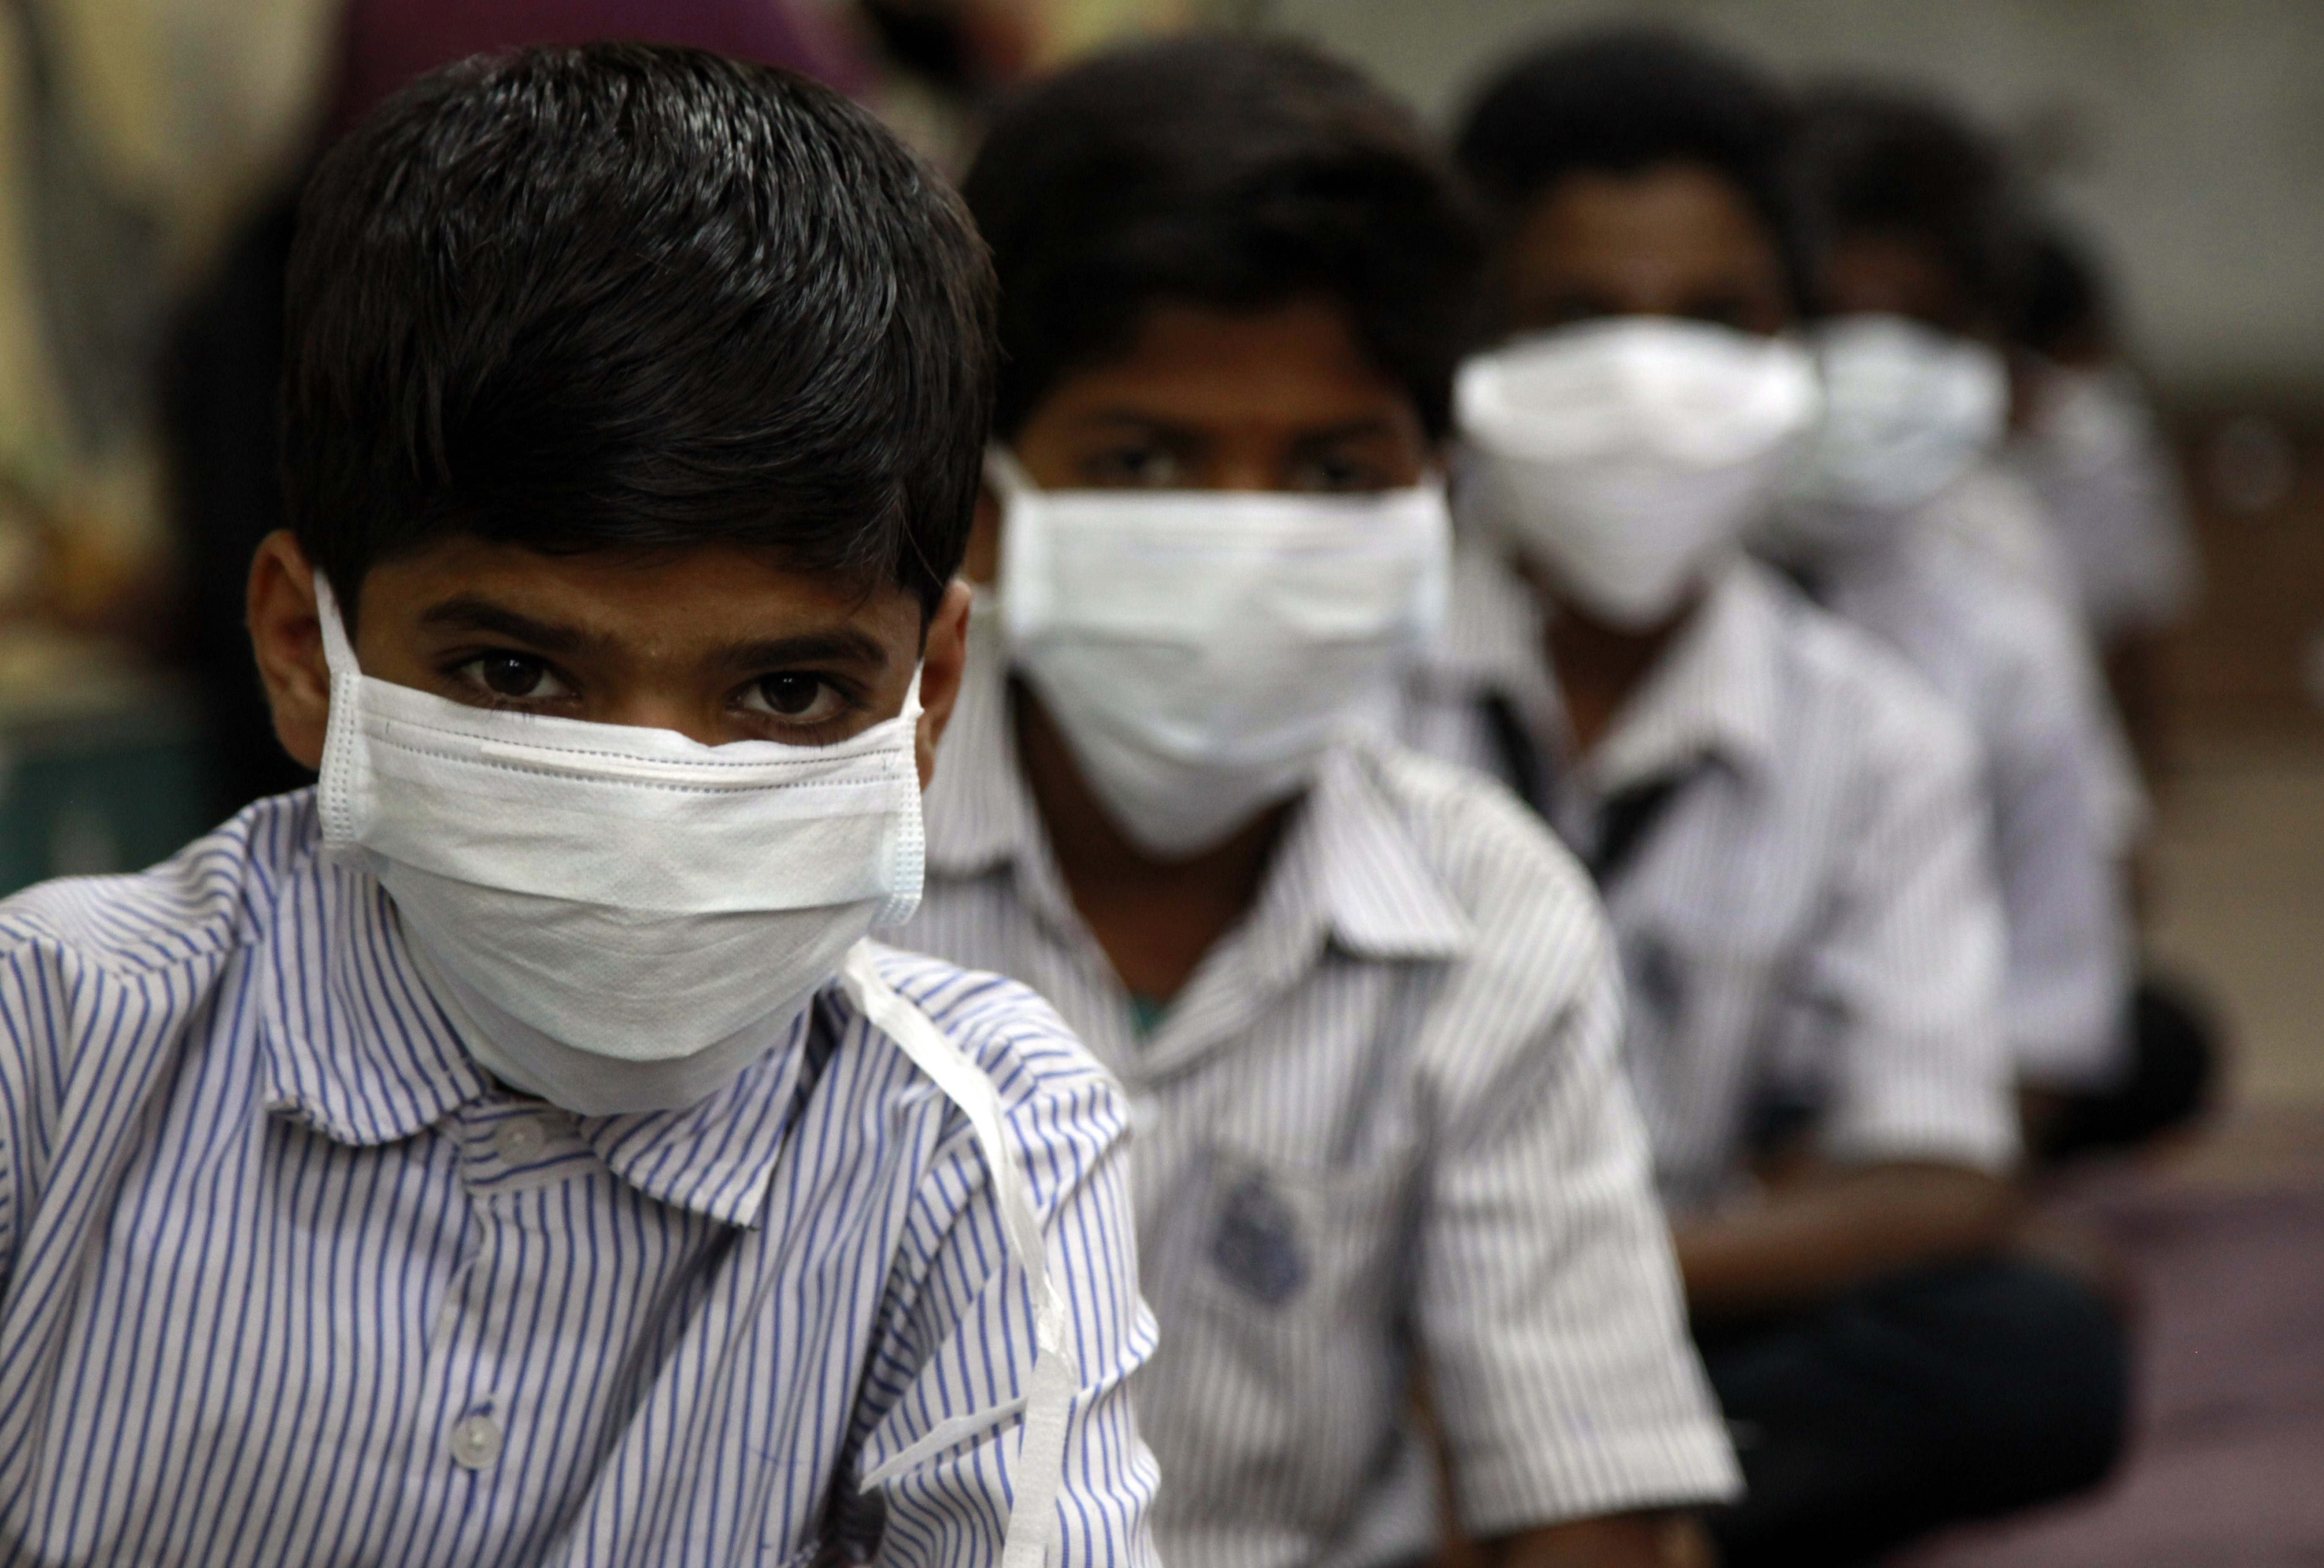 A class of Indian students have taken to wearing masks to avoid contracting swine flu in Mumbai, India on 20 February, 2015.